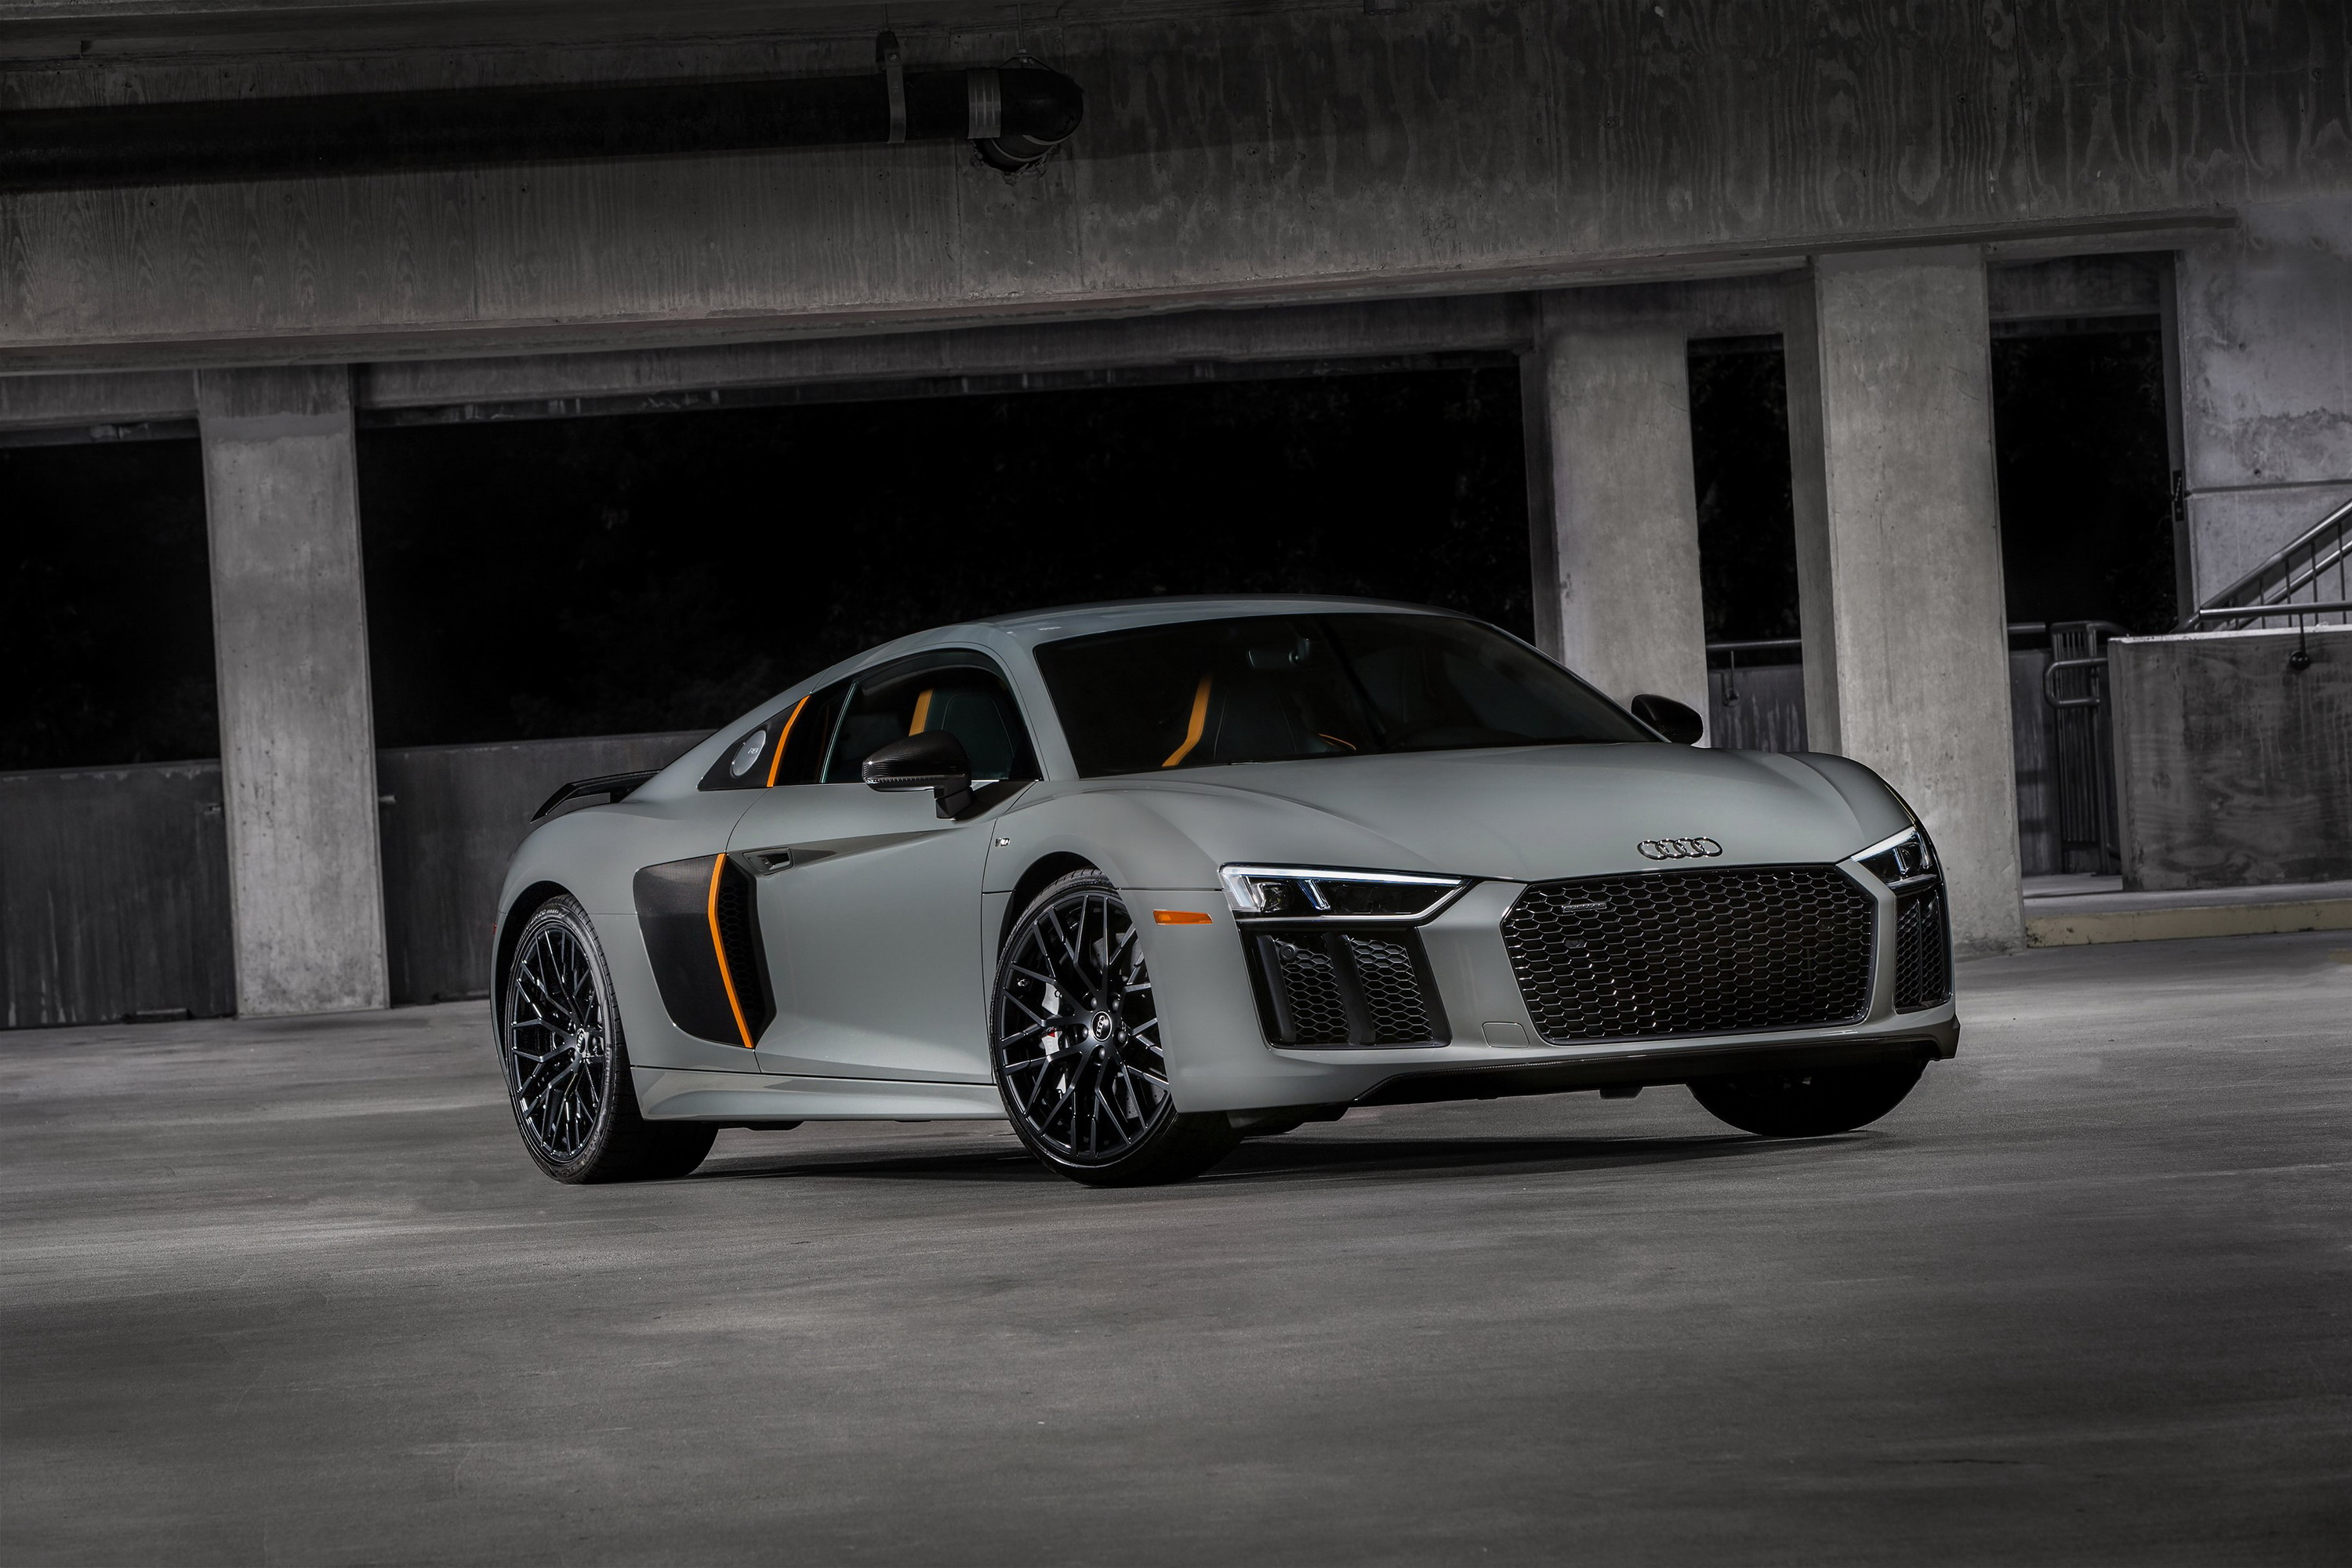 2017 Audi R8 V10 Plus Exclusive Edition Top Speed